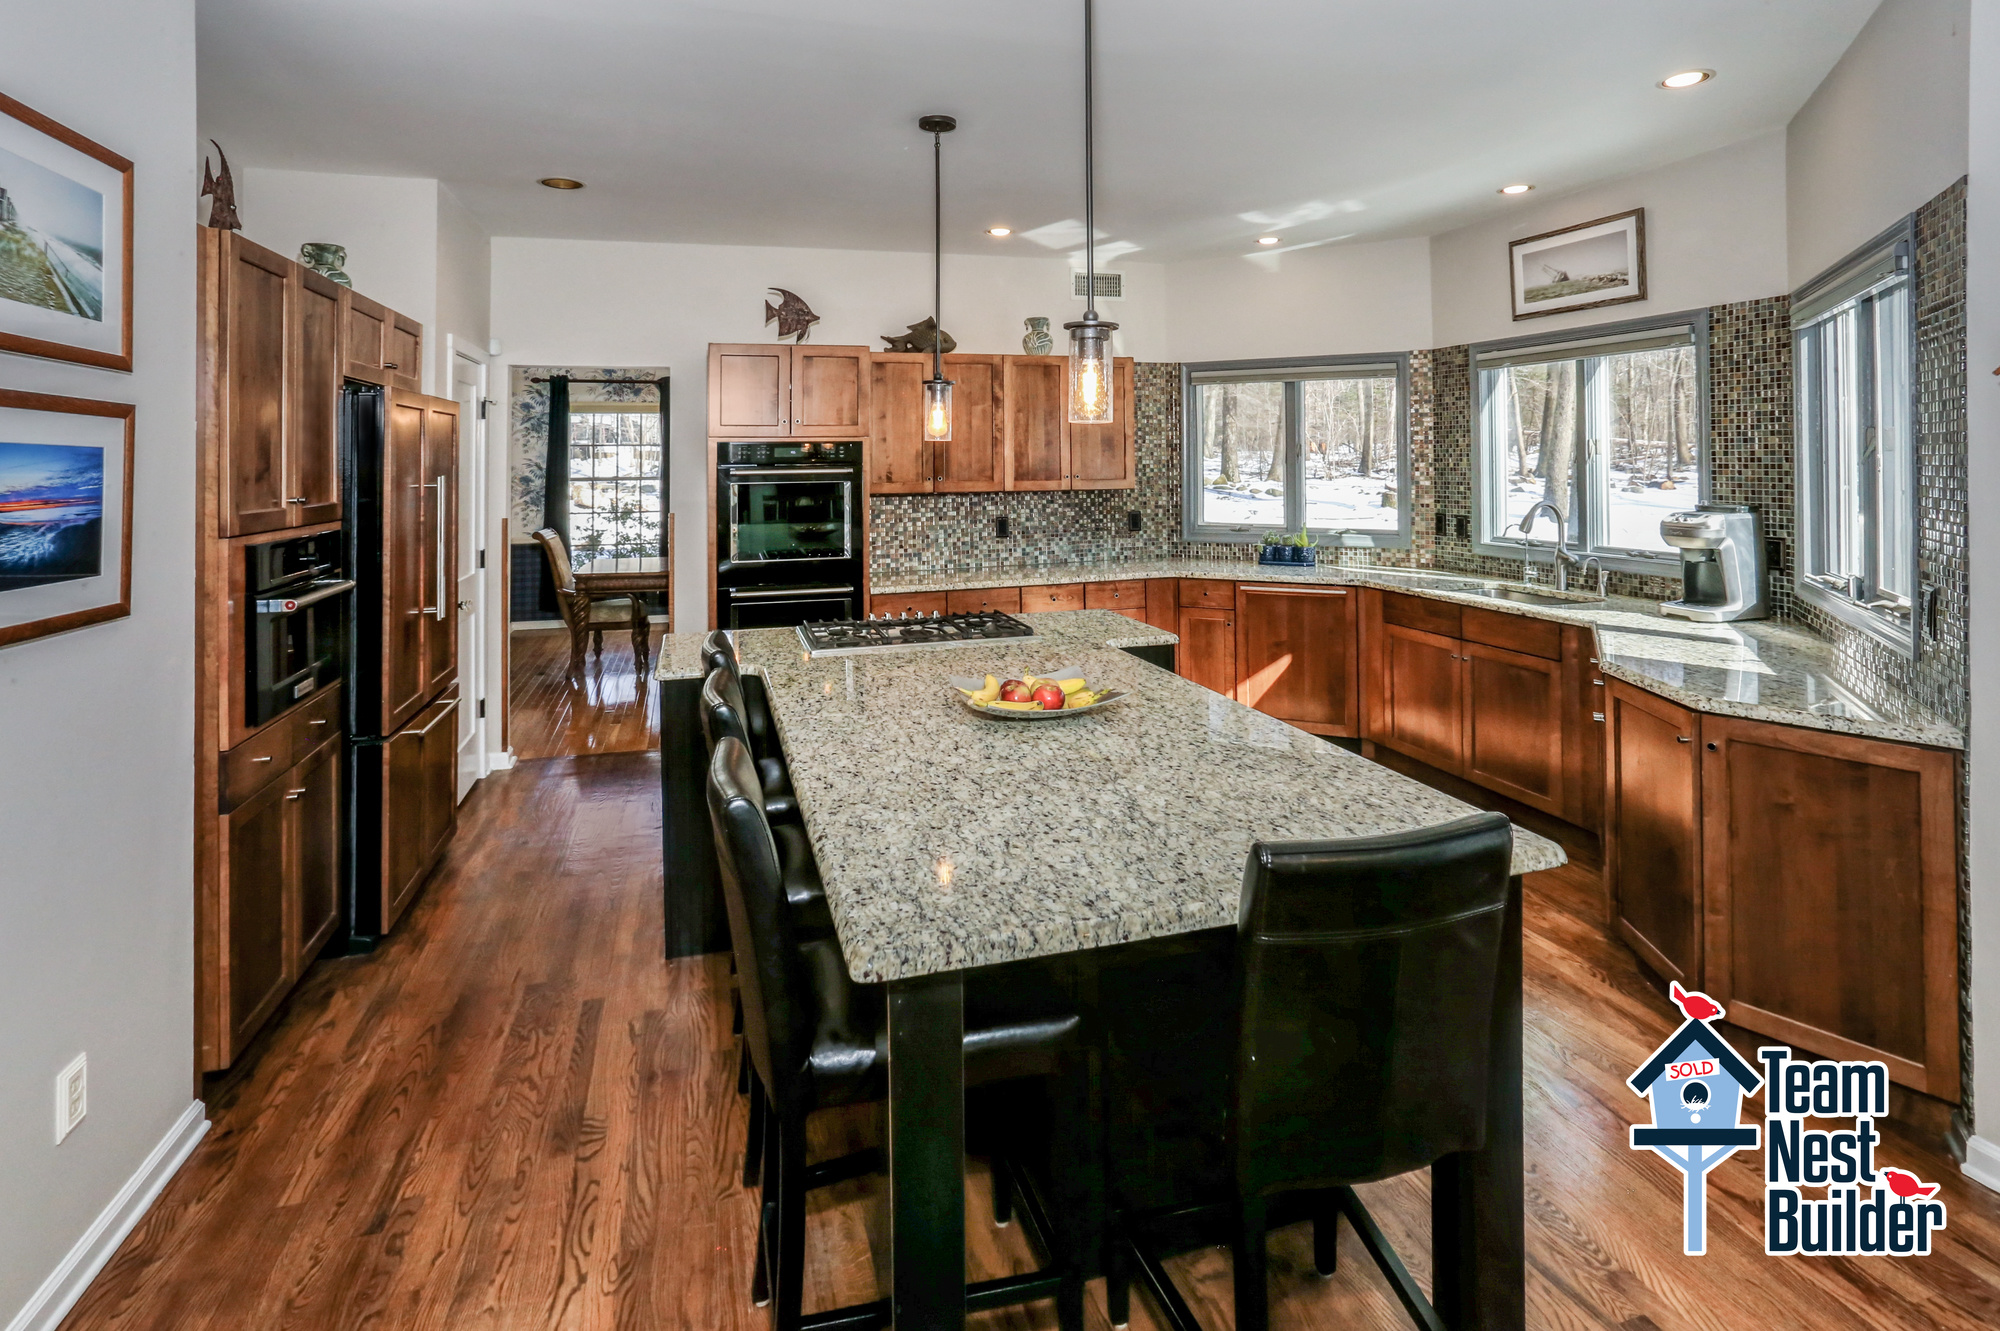 Gather with friends and family in the huge kitchen!